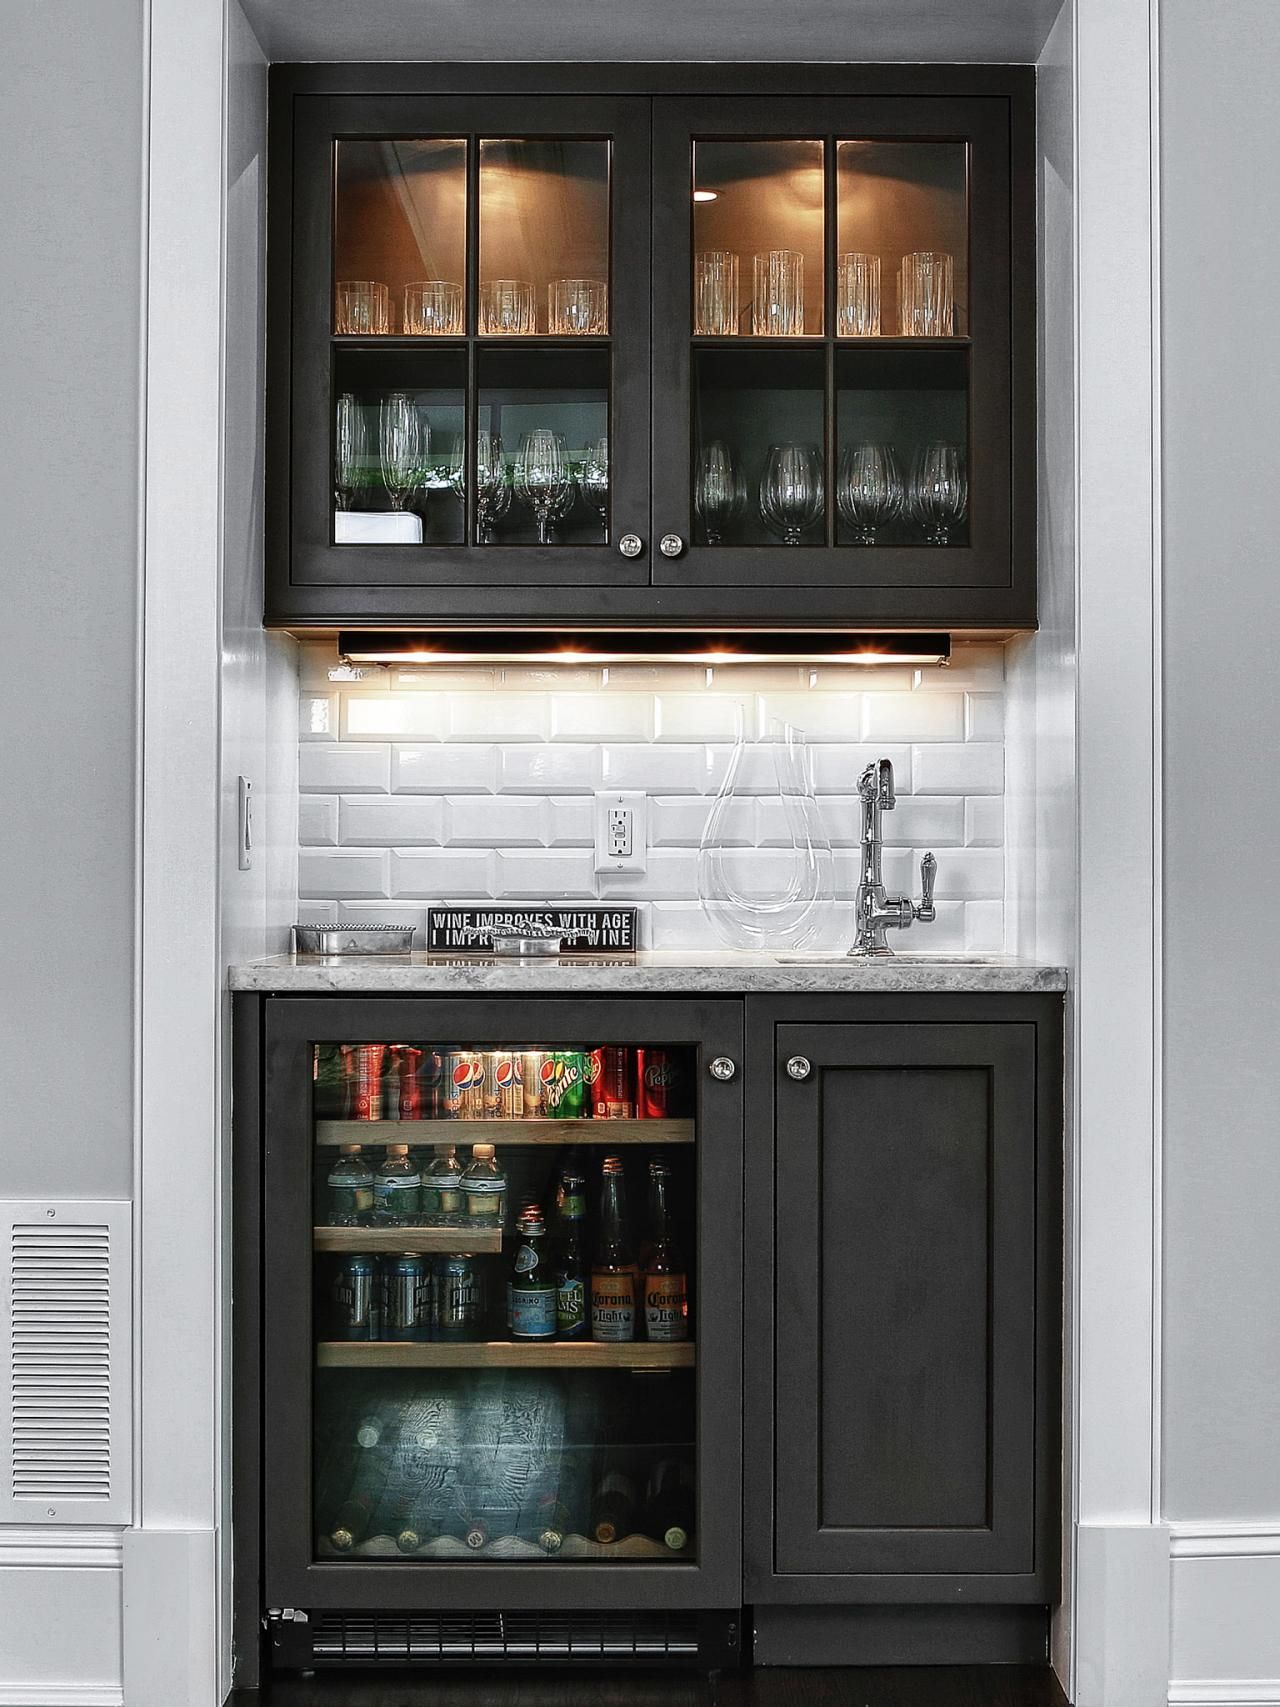 15 Stylish Small Home Bar Ideas | Pinterest | Remodeling ideas, Hgtv ...